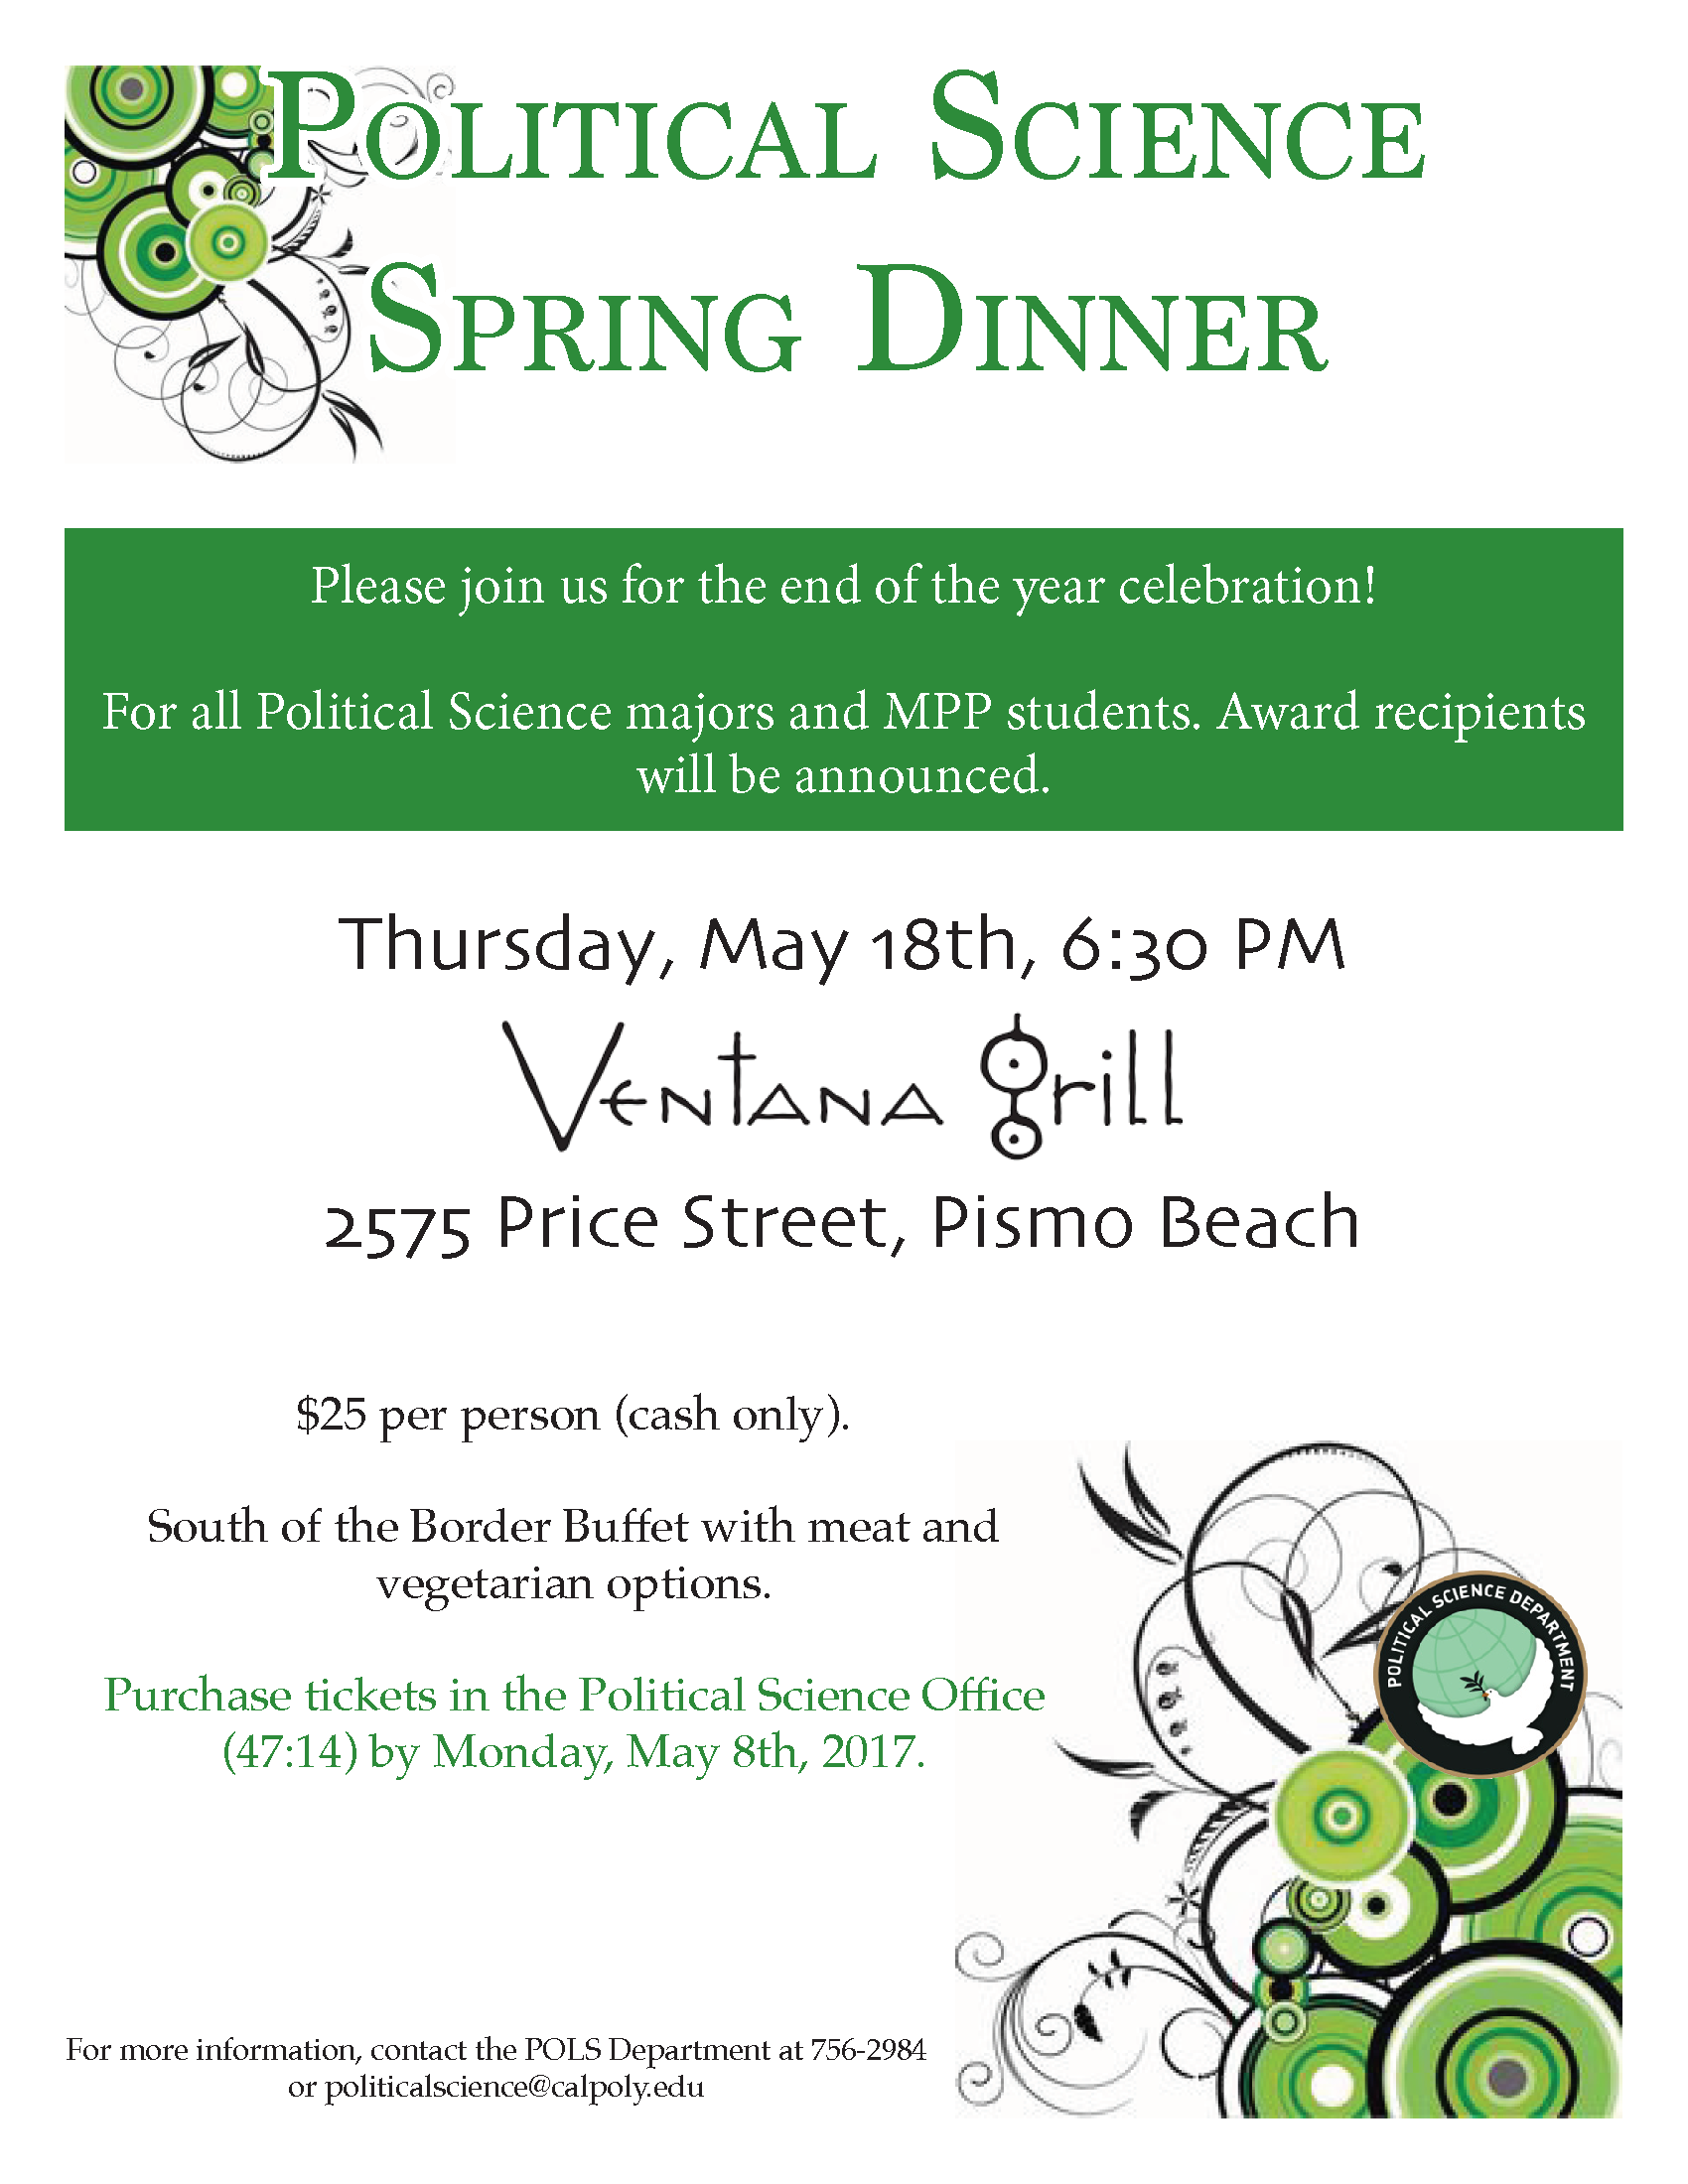 Political Science Spring Dinner 2017 Flyer